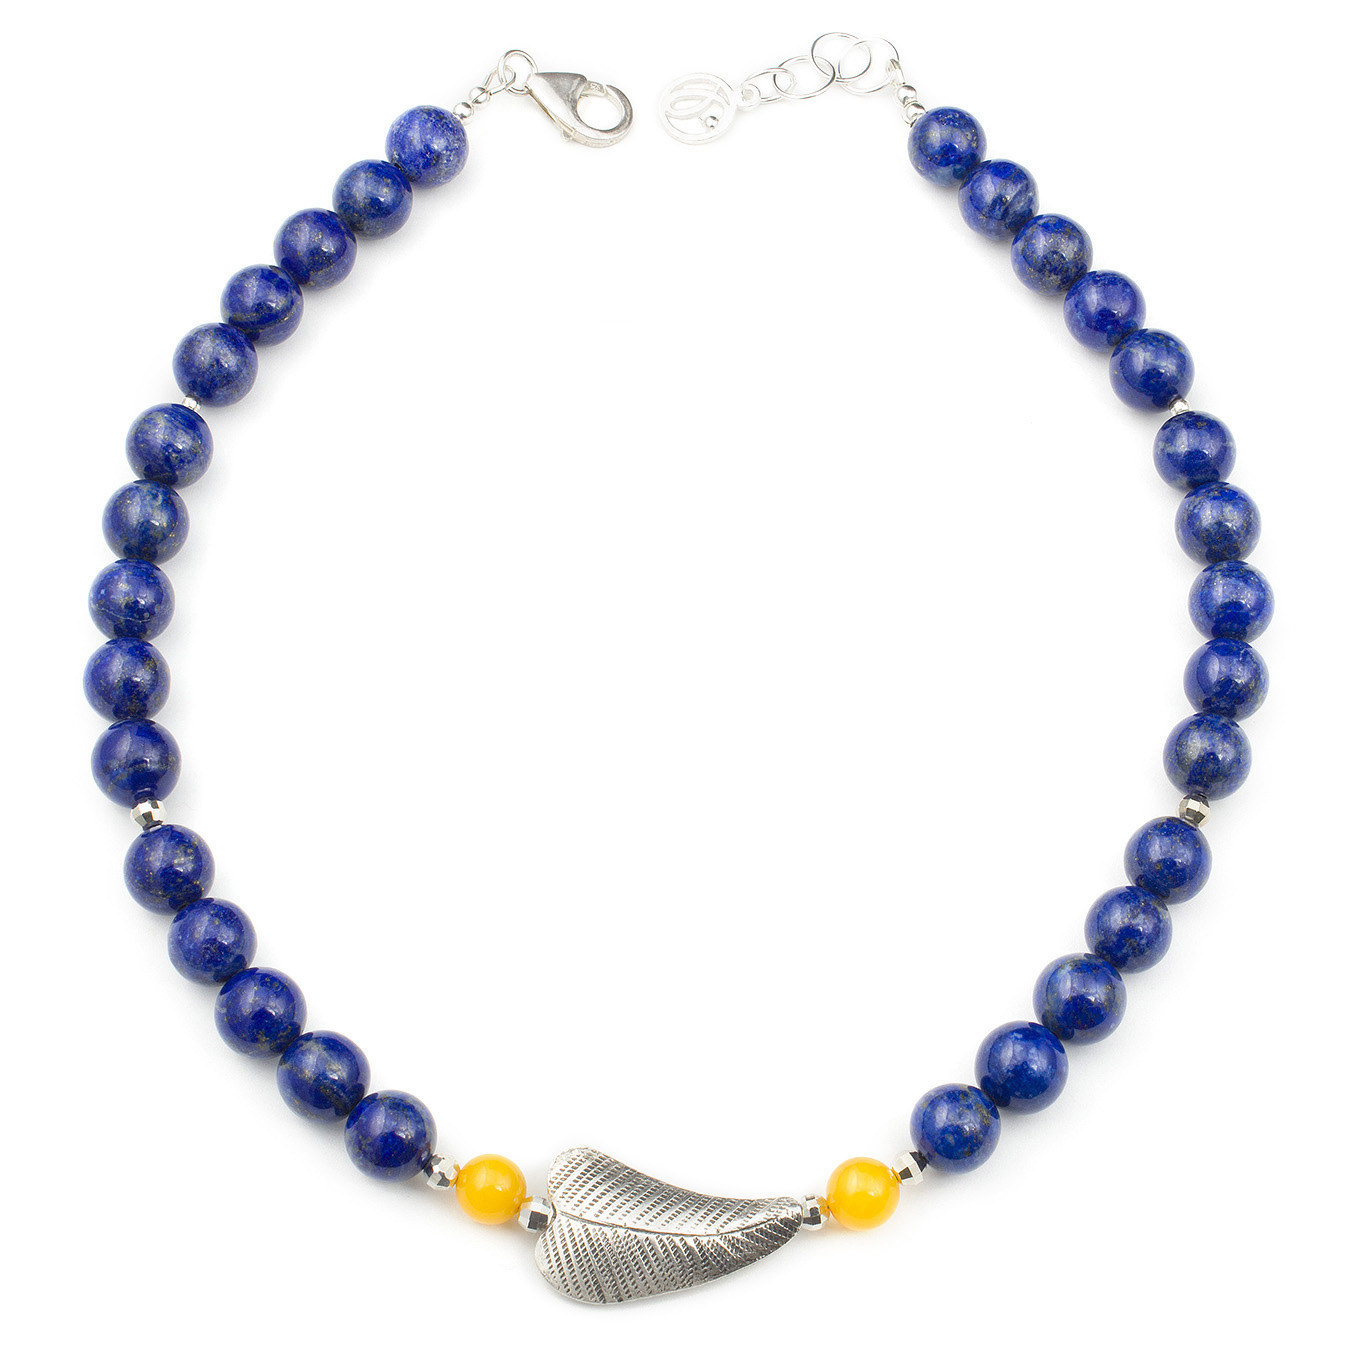 Create your own lapis station necklace with choice of amber and topaz